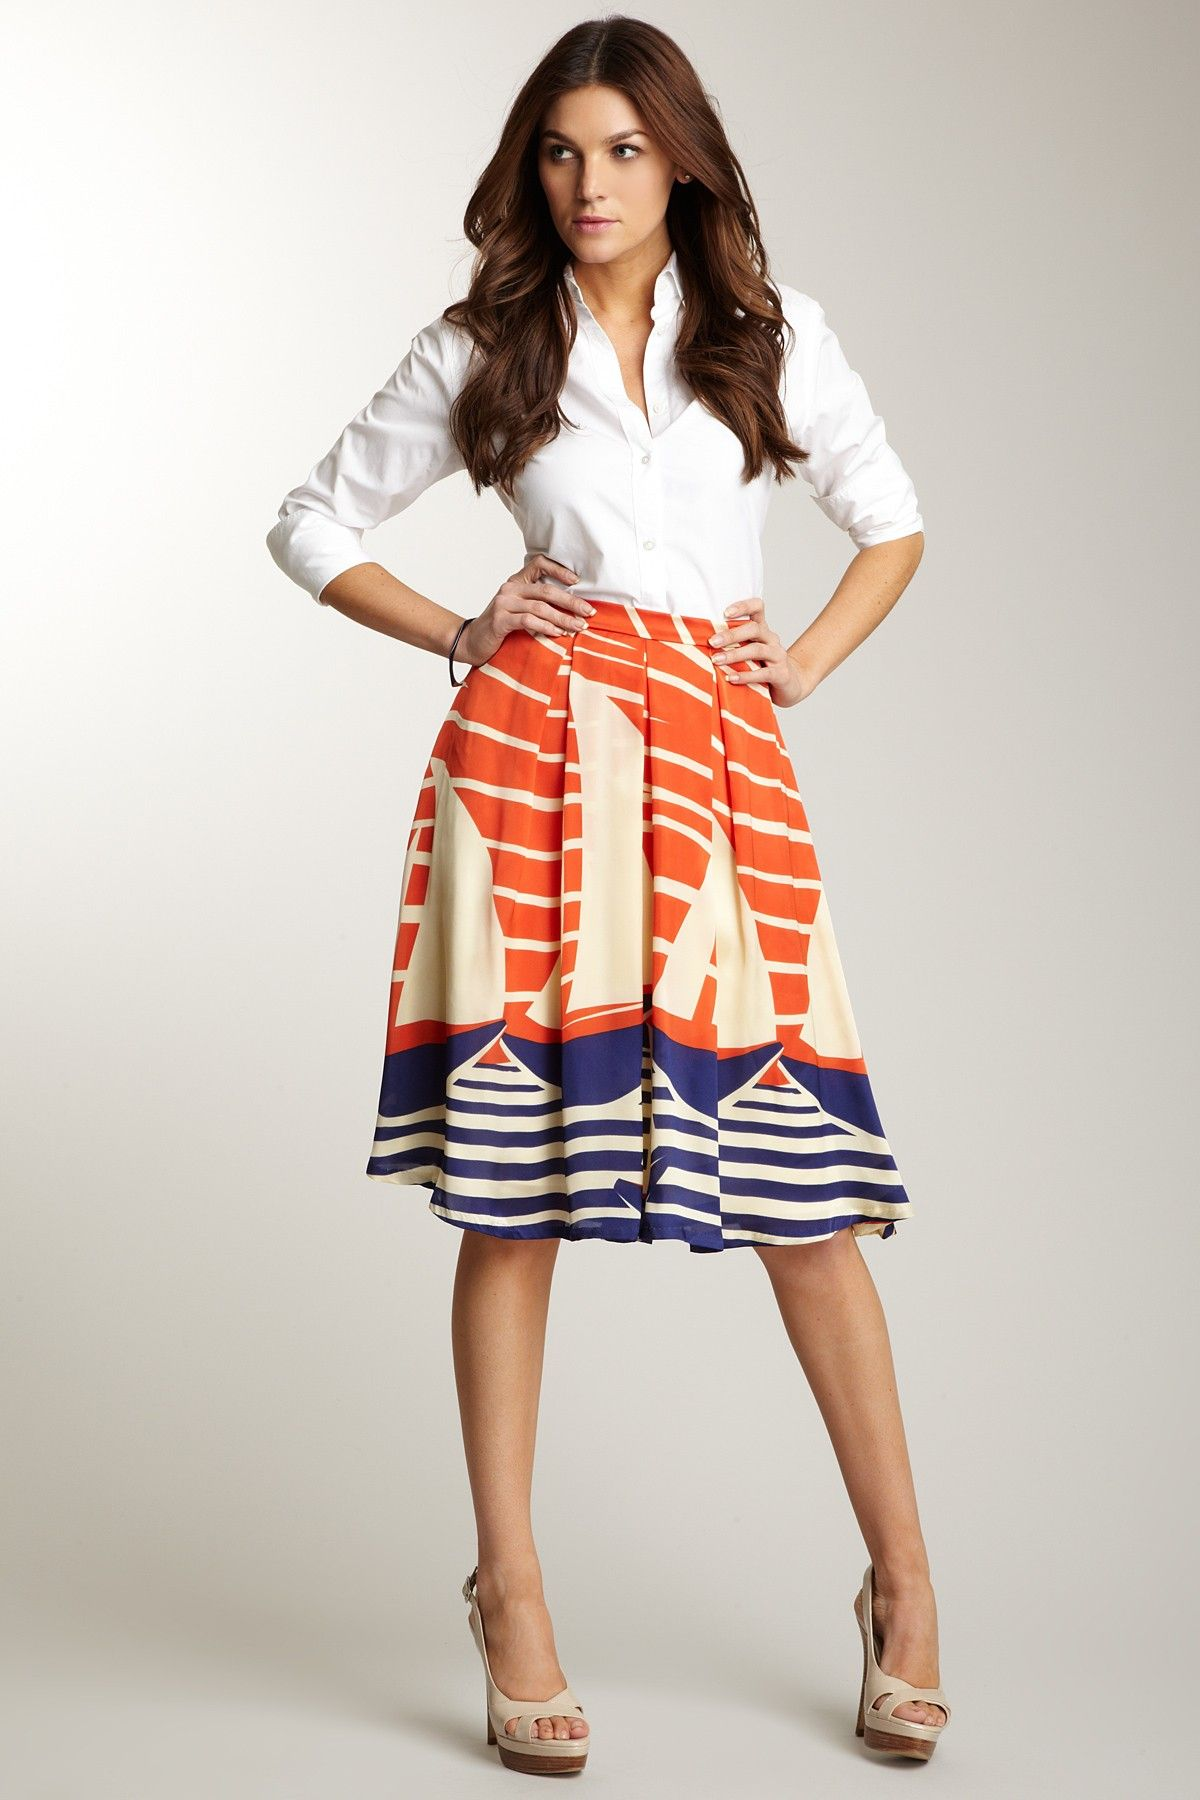 37681ec8dbb6 Eva Franco Glen Skirt